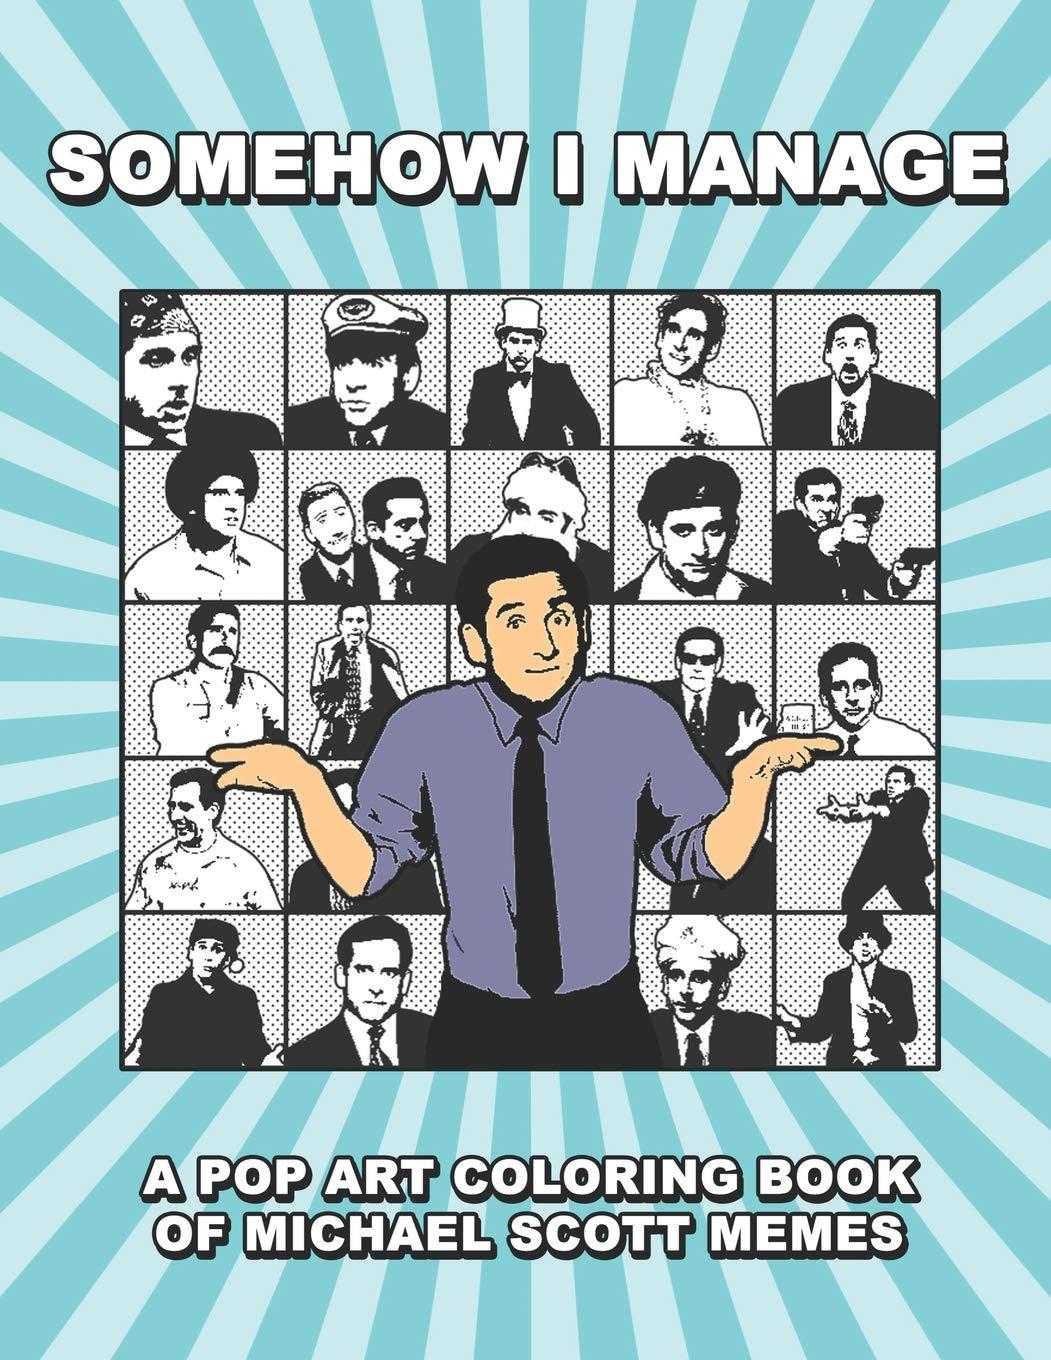 - Amazon.com: Somehow I Manage: A Pop Art Coloring Book Of Michael